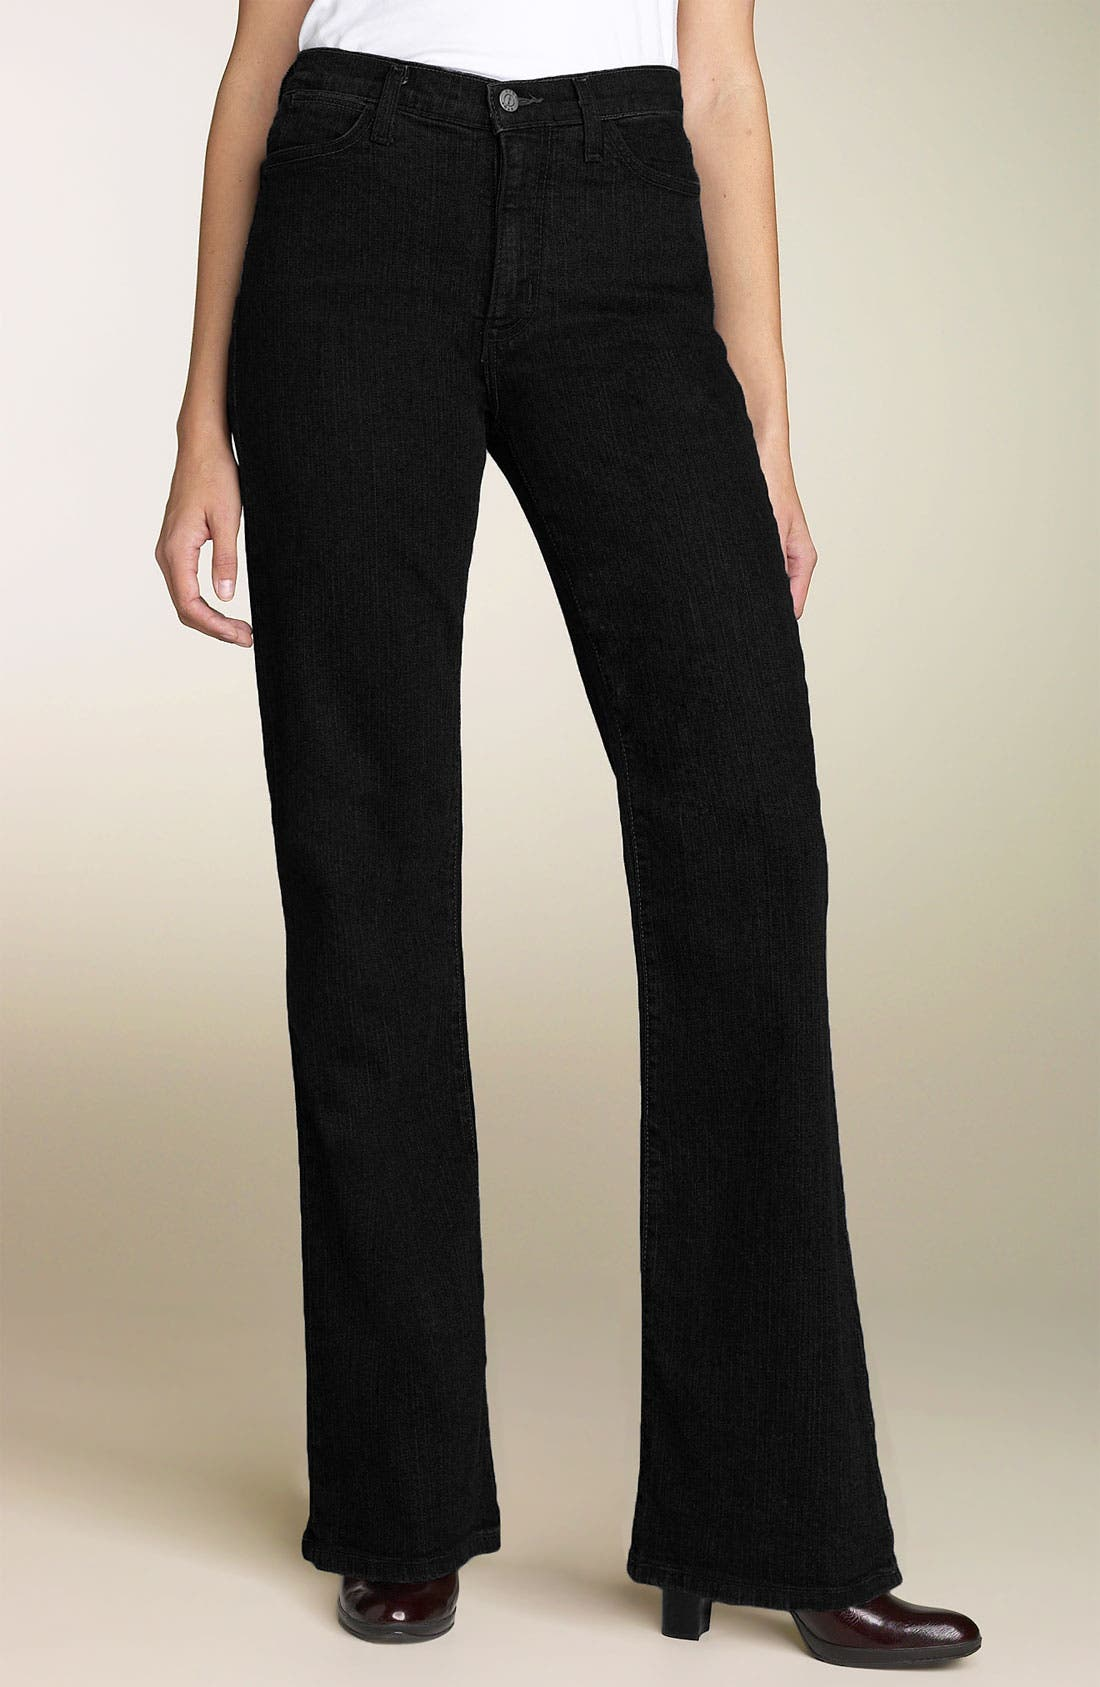 Alternate Image 1 Selected - NYDJ 'Sarah' Stretch Bootcut Jeans (Black) (Long)